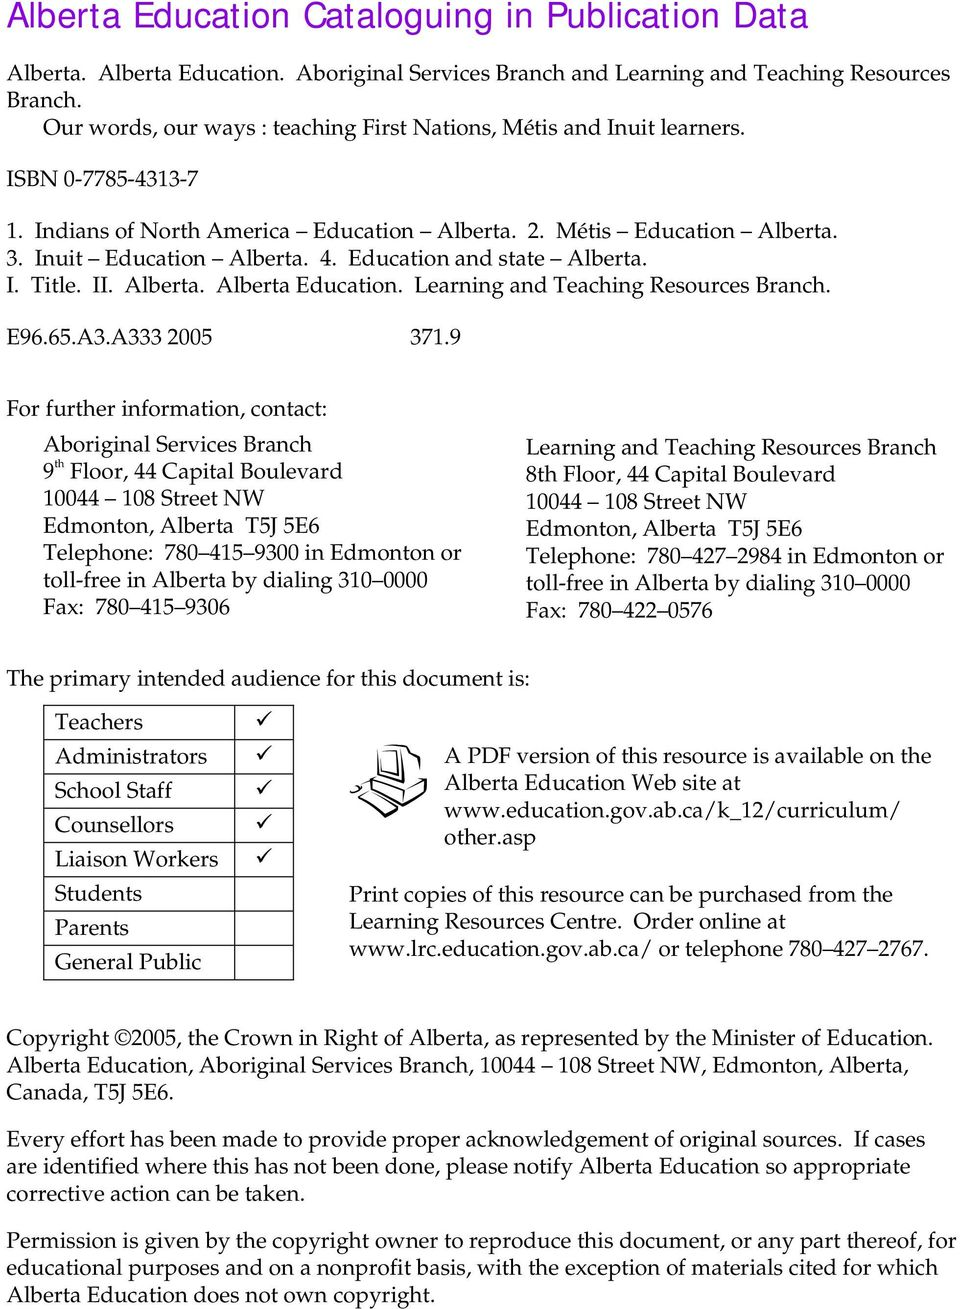 Education and state Alberta. I. Title. II. Alberta. Alberta Education. Learning and Teaching Resources Branch. E96.65.A3.A333 2005 371.